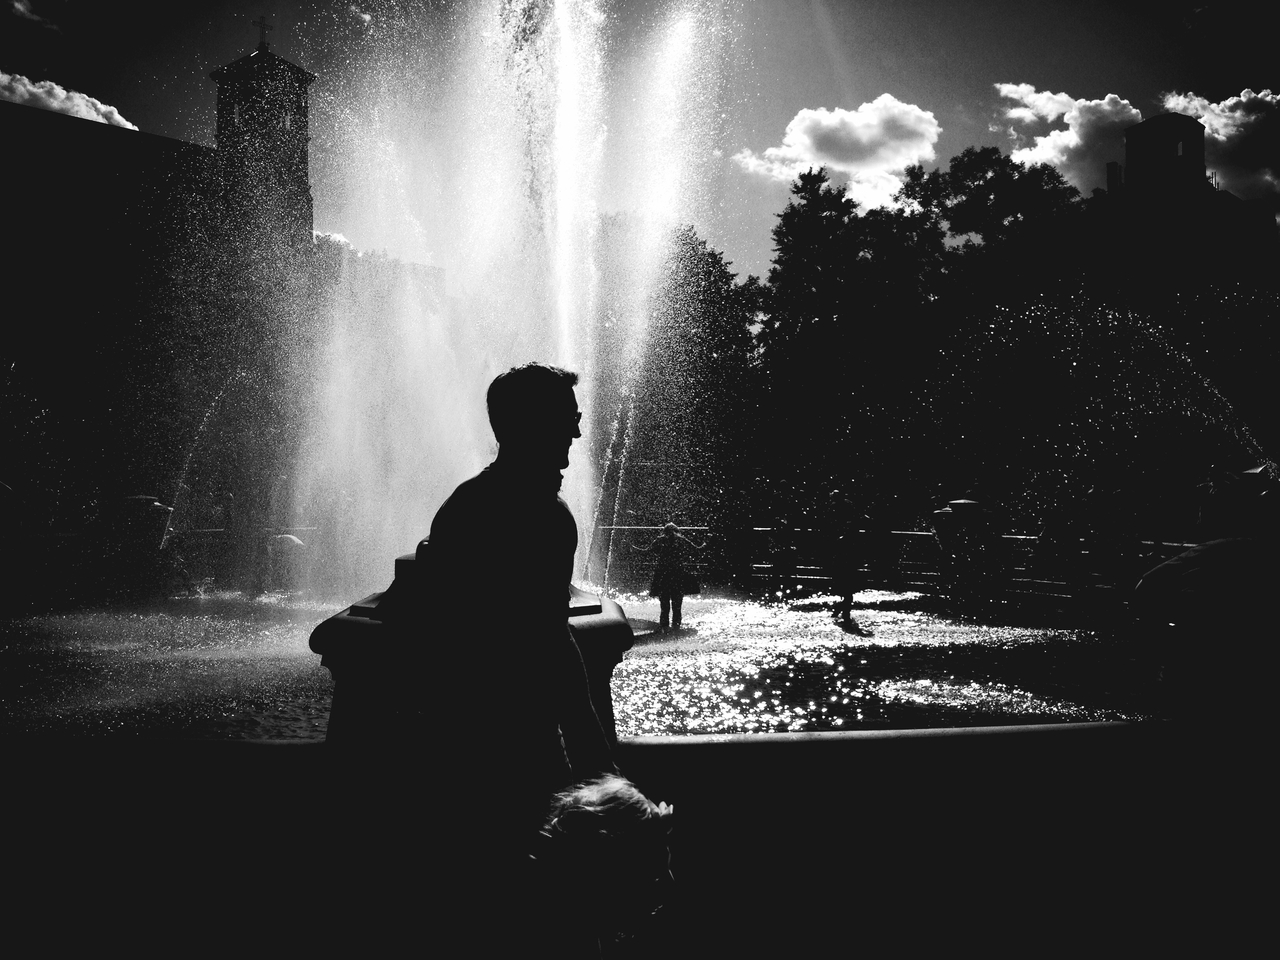 Water the Life #peppersearching #pepper #photos #father #kid #parent #water #fountain #washingtonsquarepark #nyc